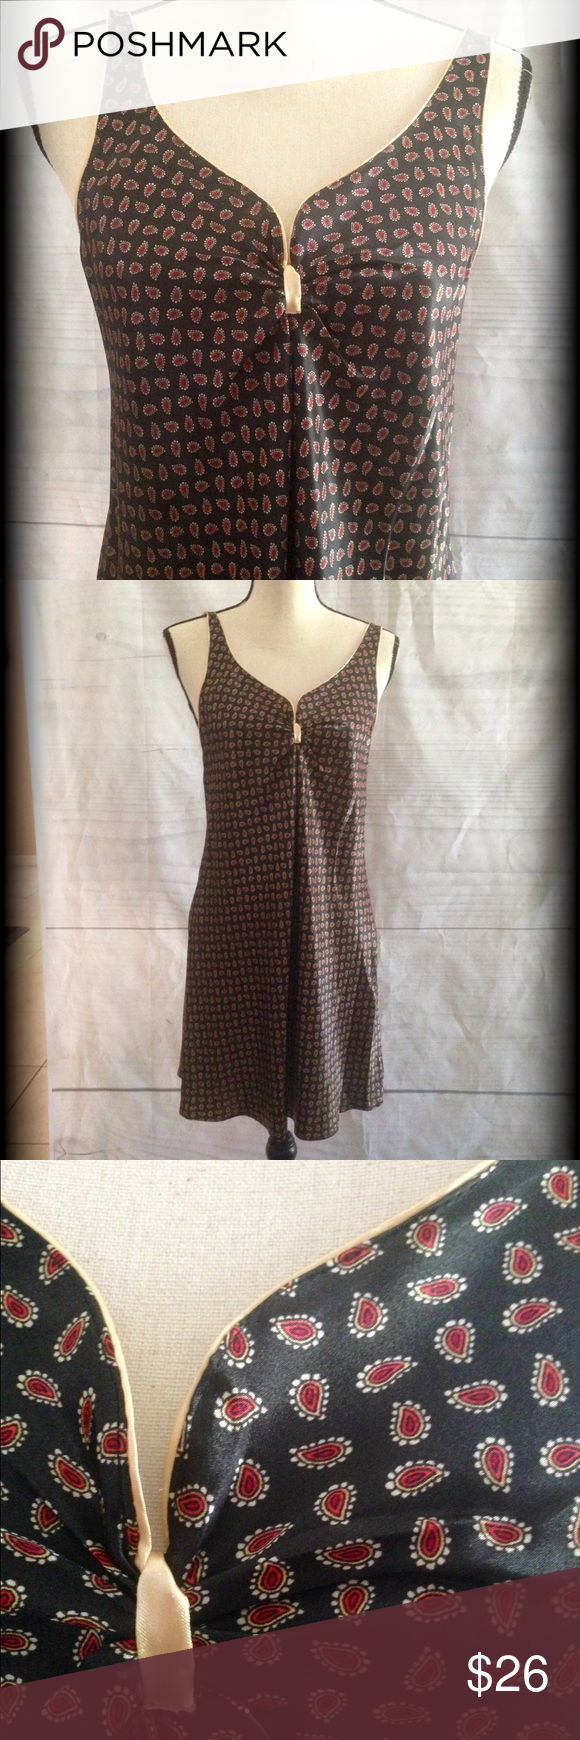 """Sexy nightgown 100% polyester. Looks and feels like satin. Straps adjust in back. From armpit to bottom is 23 ½"""" long. Jones New York Intimates & Sleepwear Chemises & Slips"""